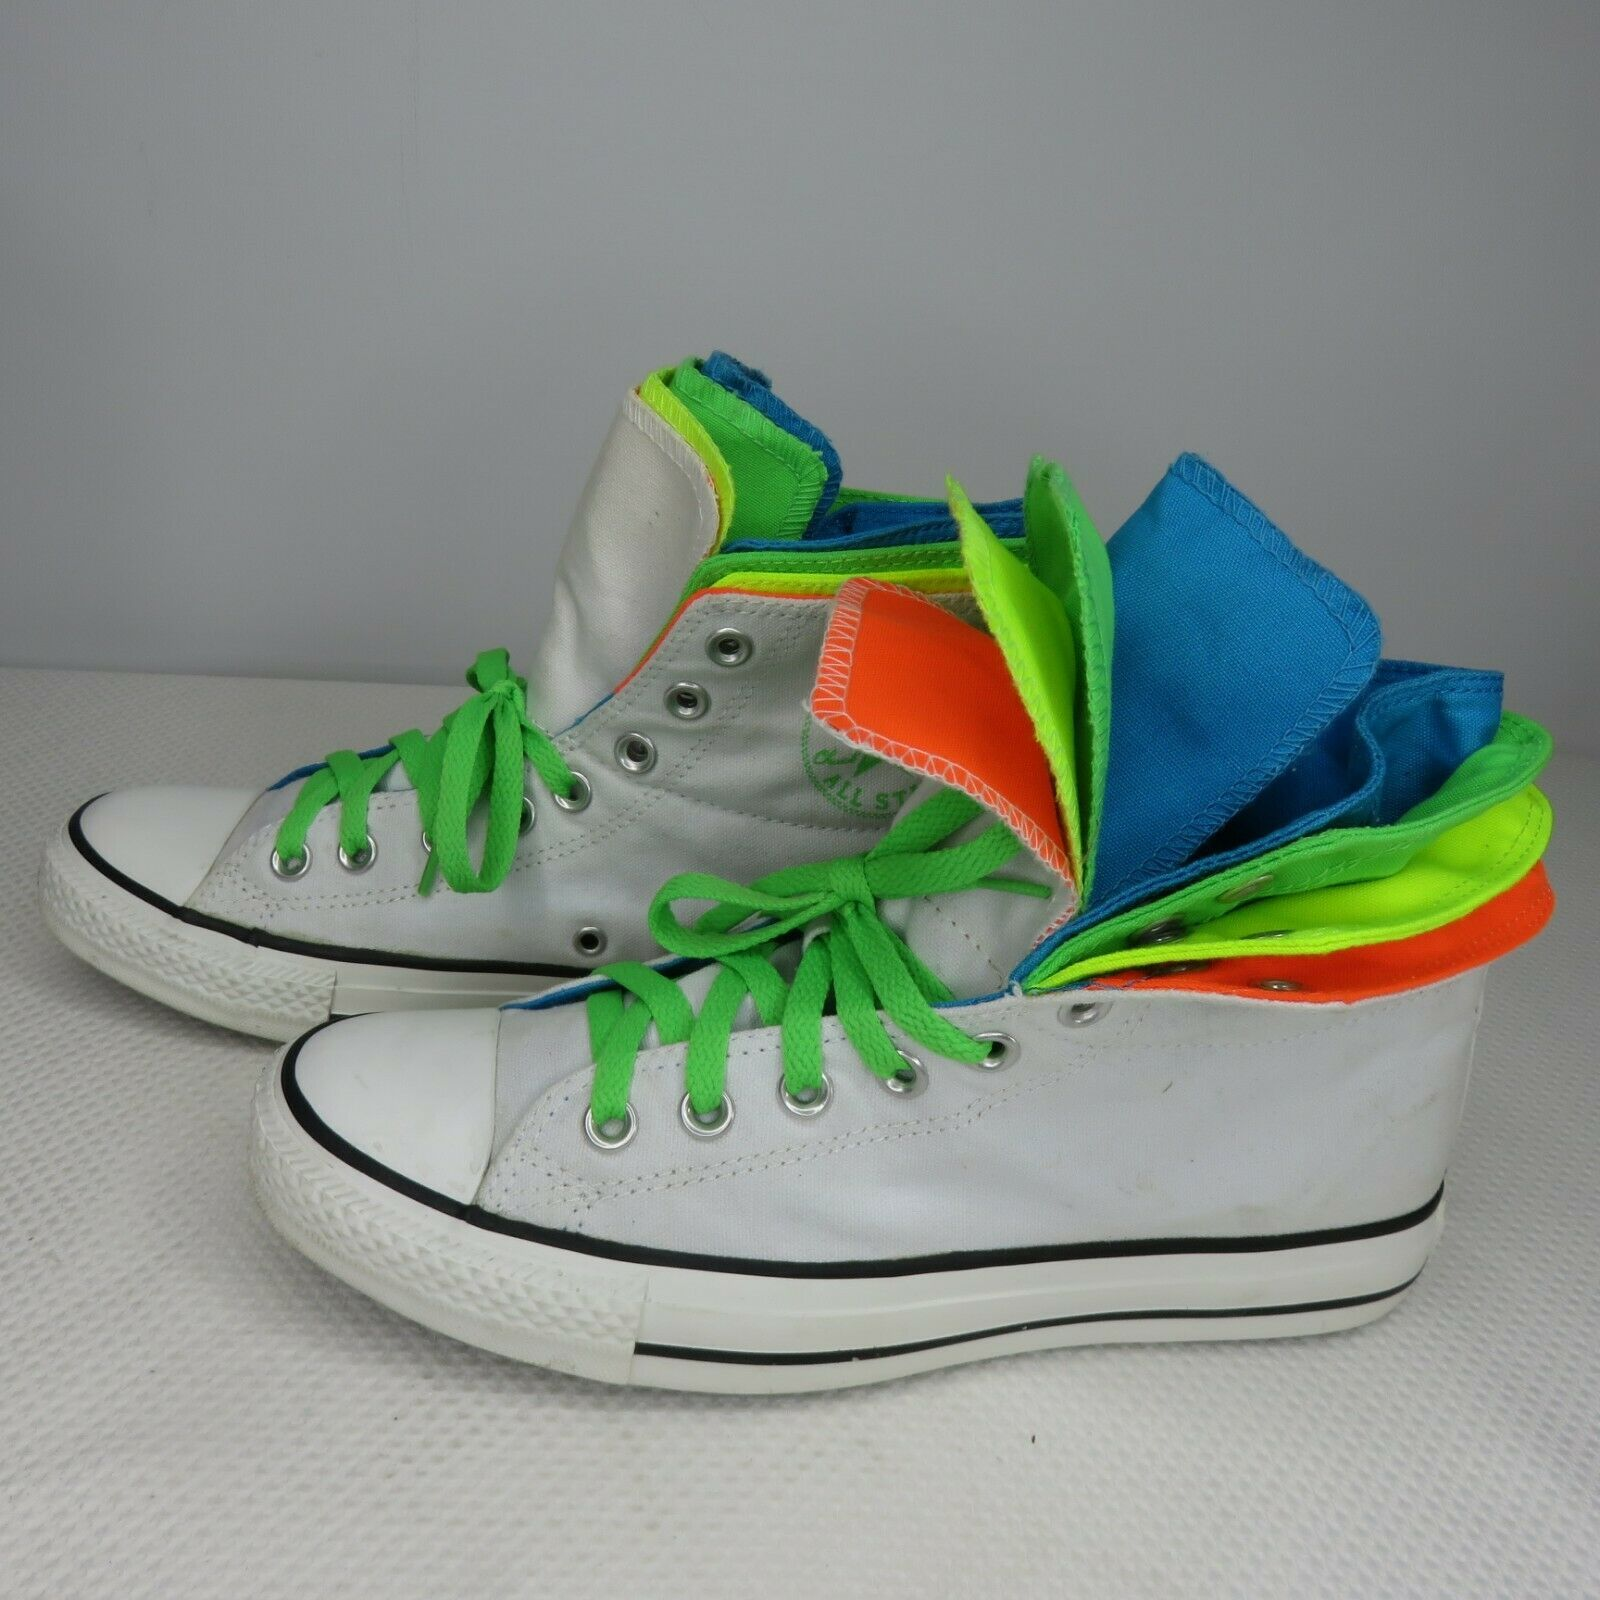 Converse Quad Fold Hi Top White Neon Blue Orange Yellow Green 9 Womens 7 Mens